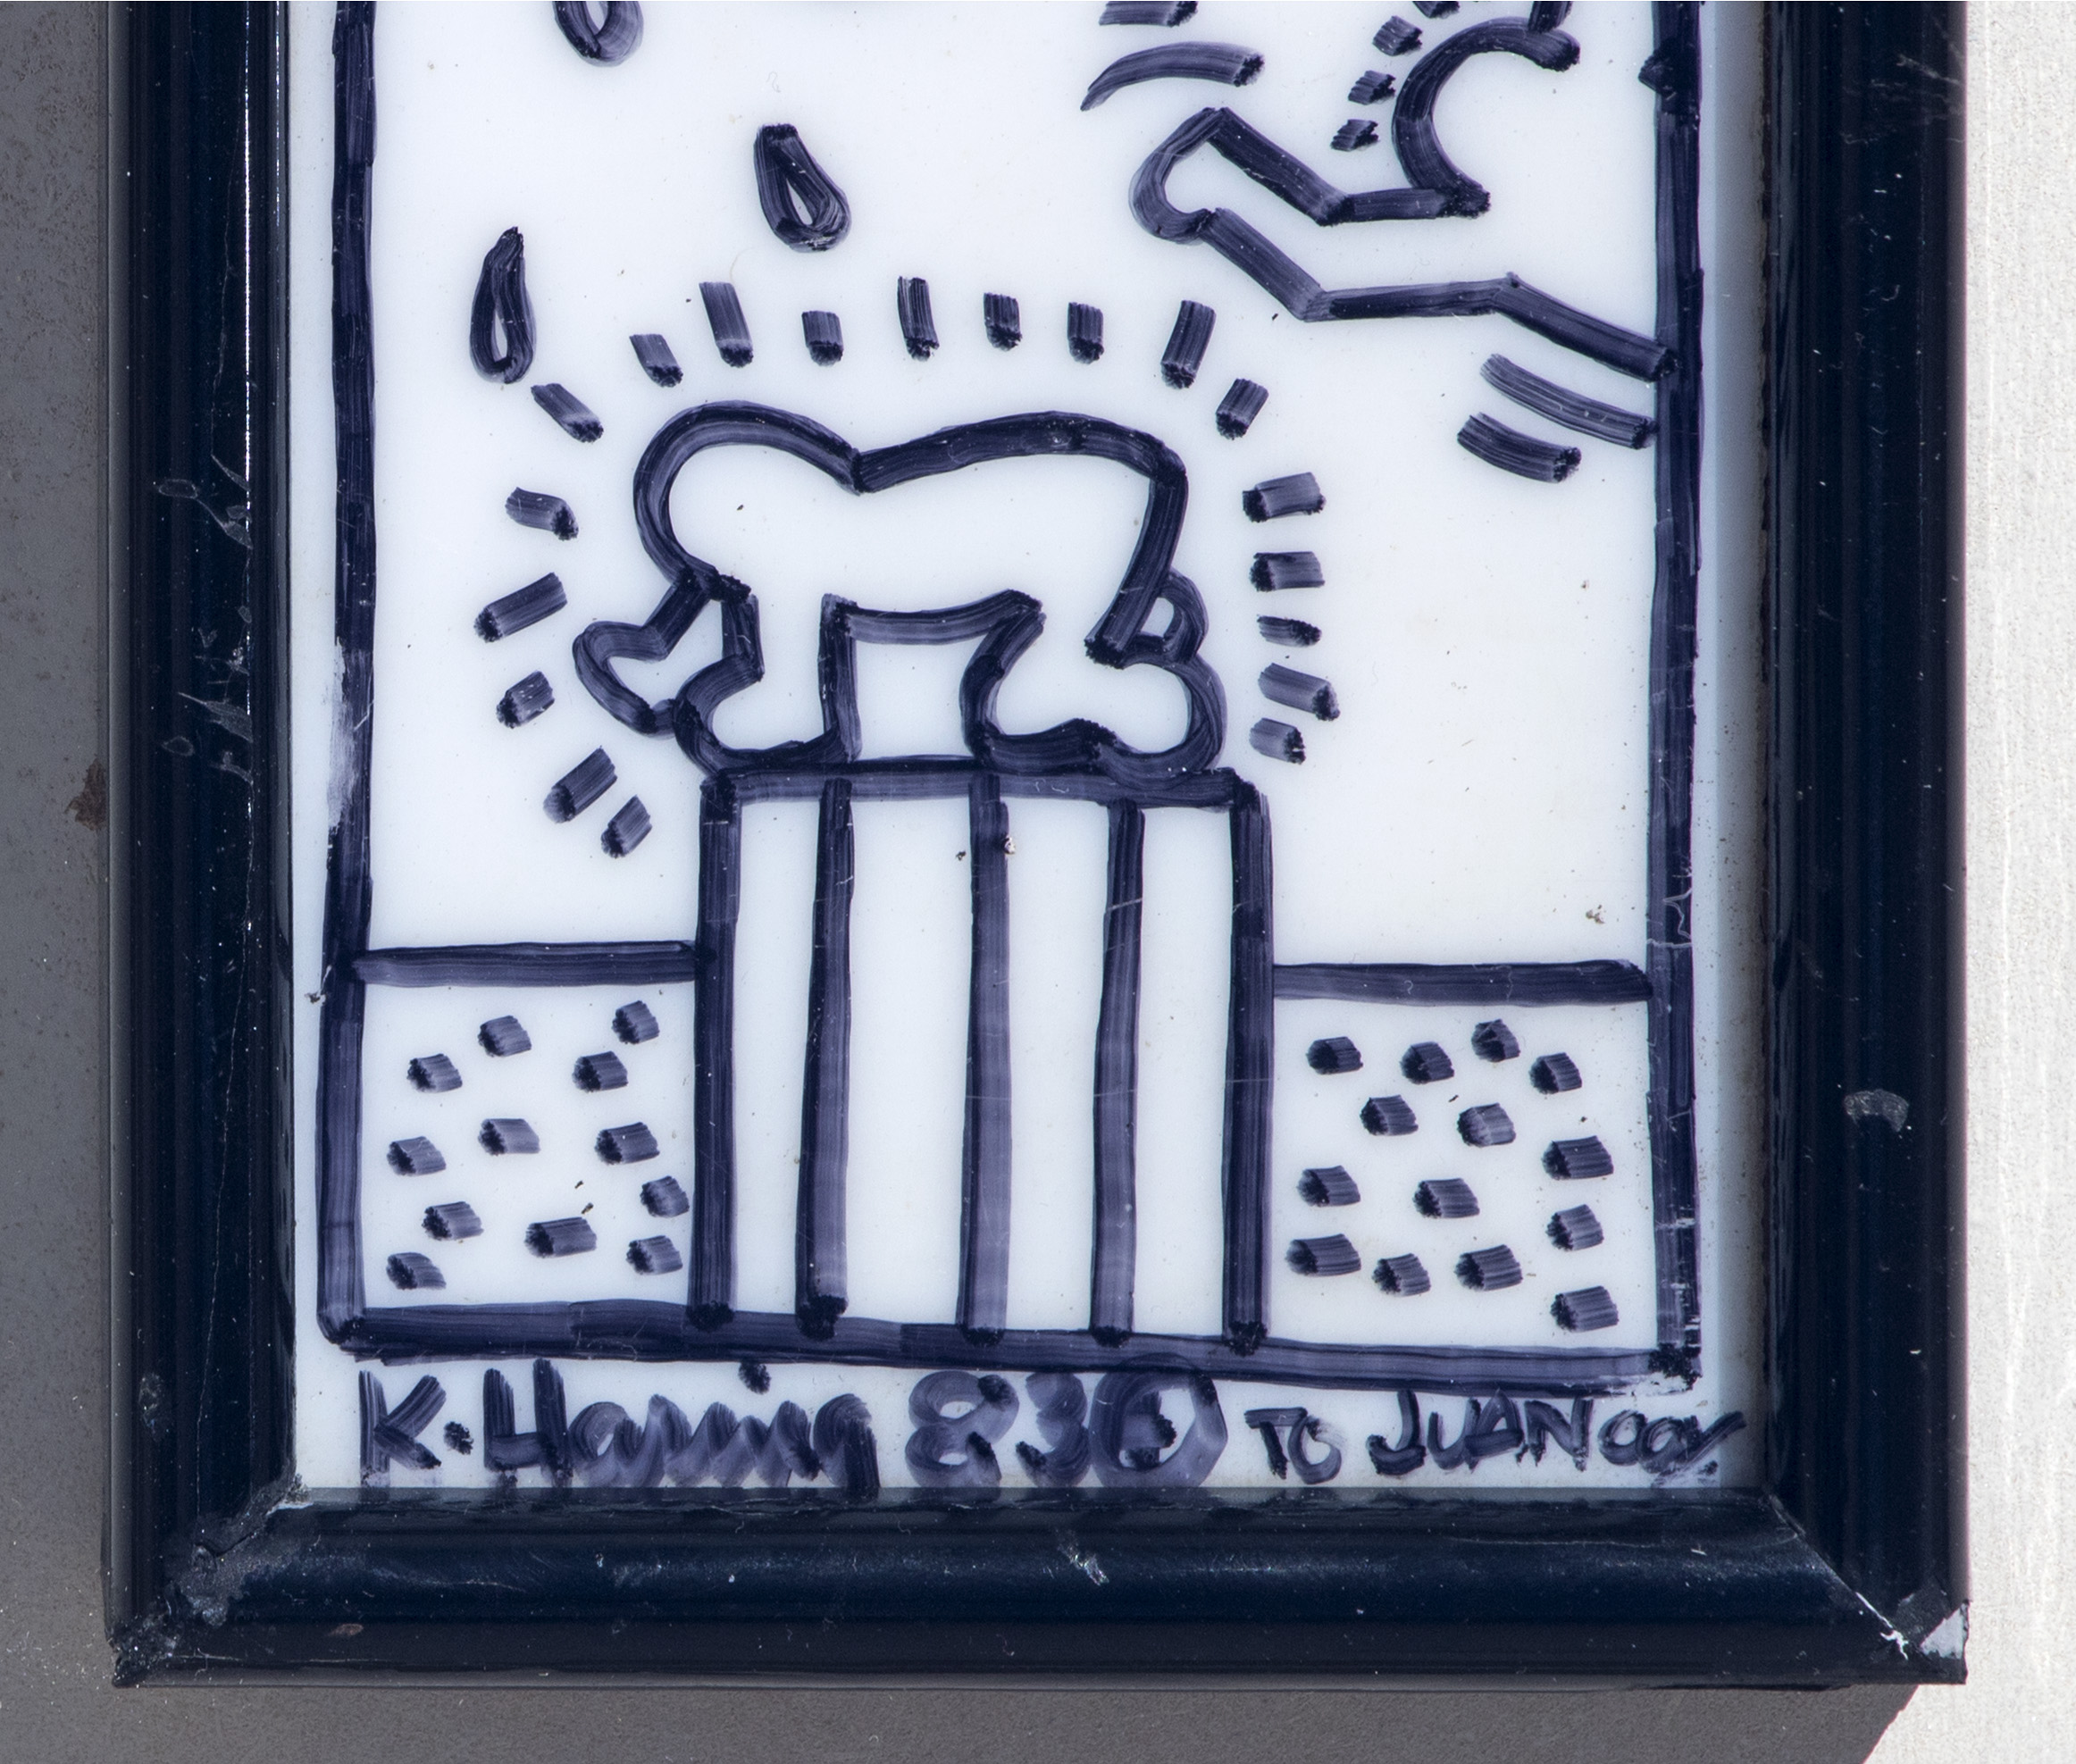 Lot 18 - Keith HARING (1958-1990) - Eros and Baby, 1983 - Marker sur plaque opaline - Signé [...]